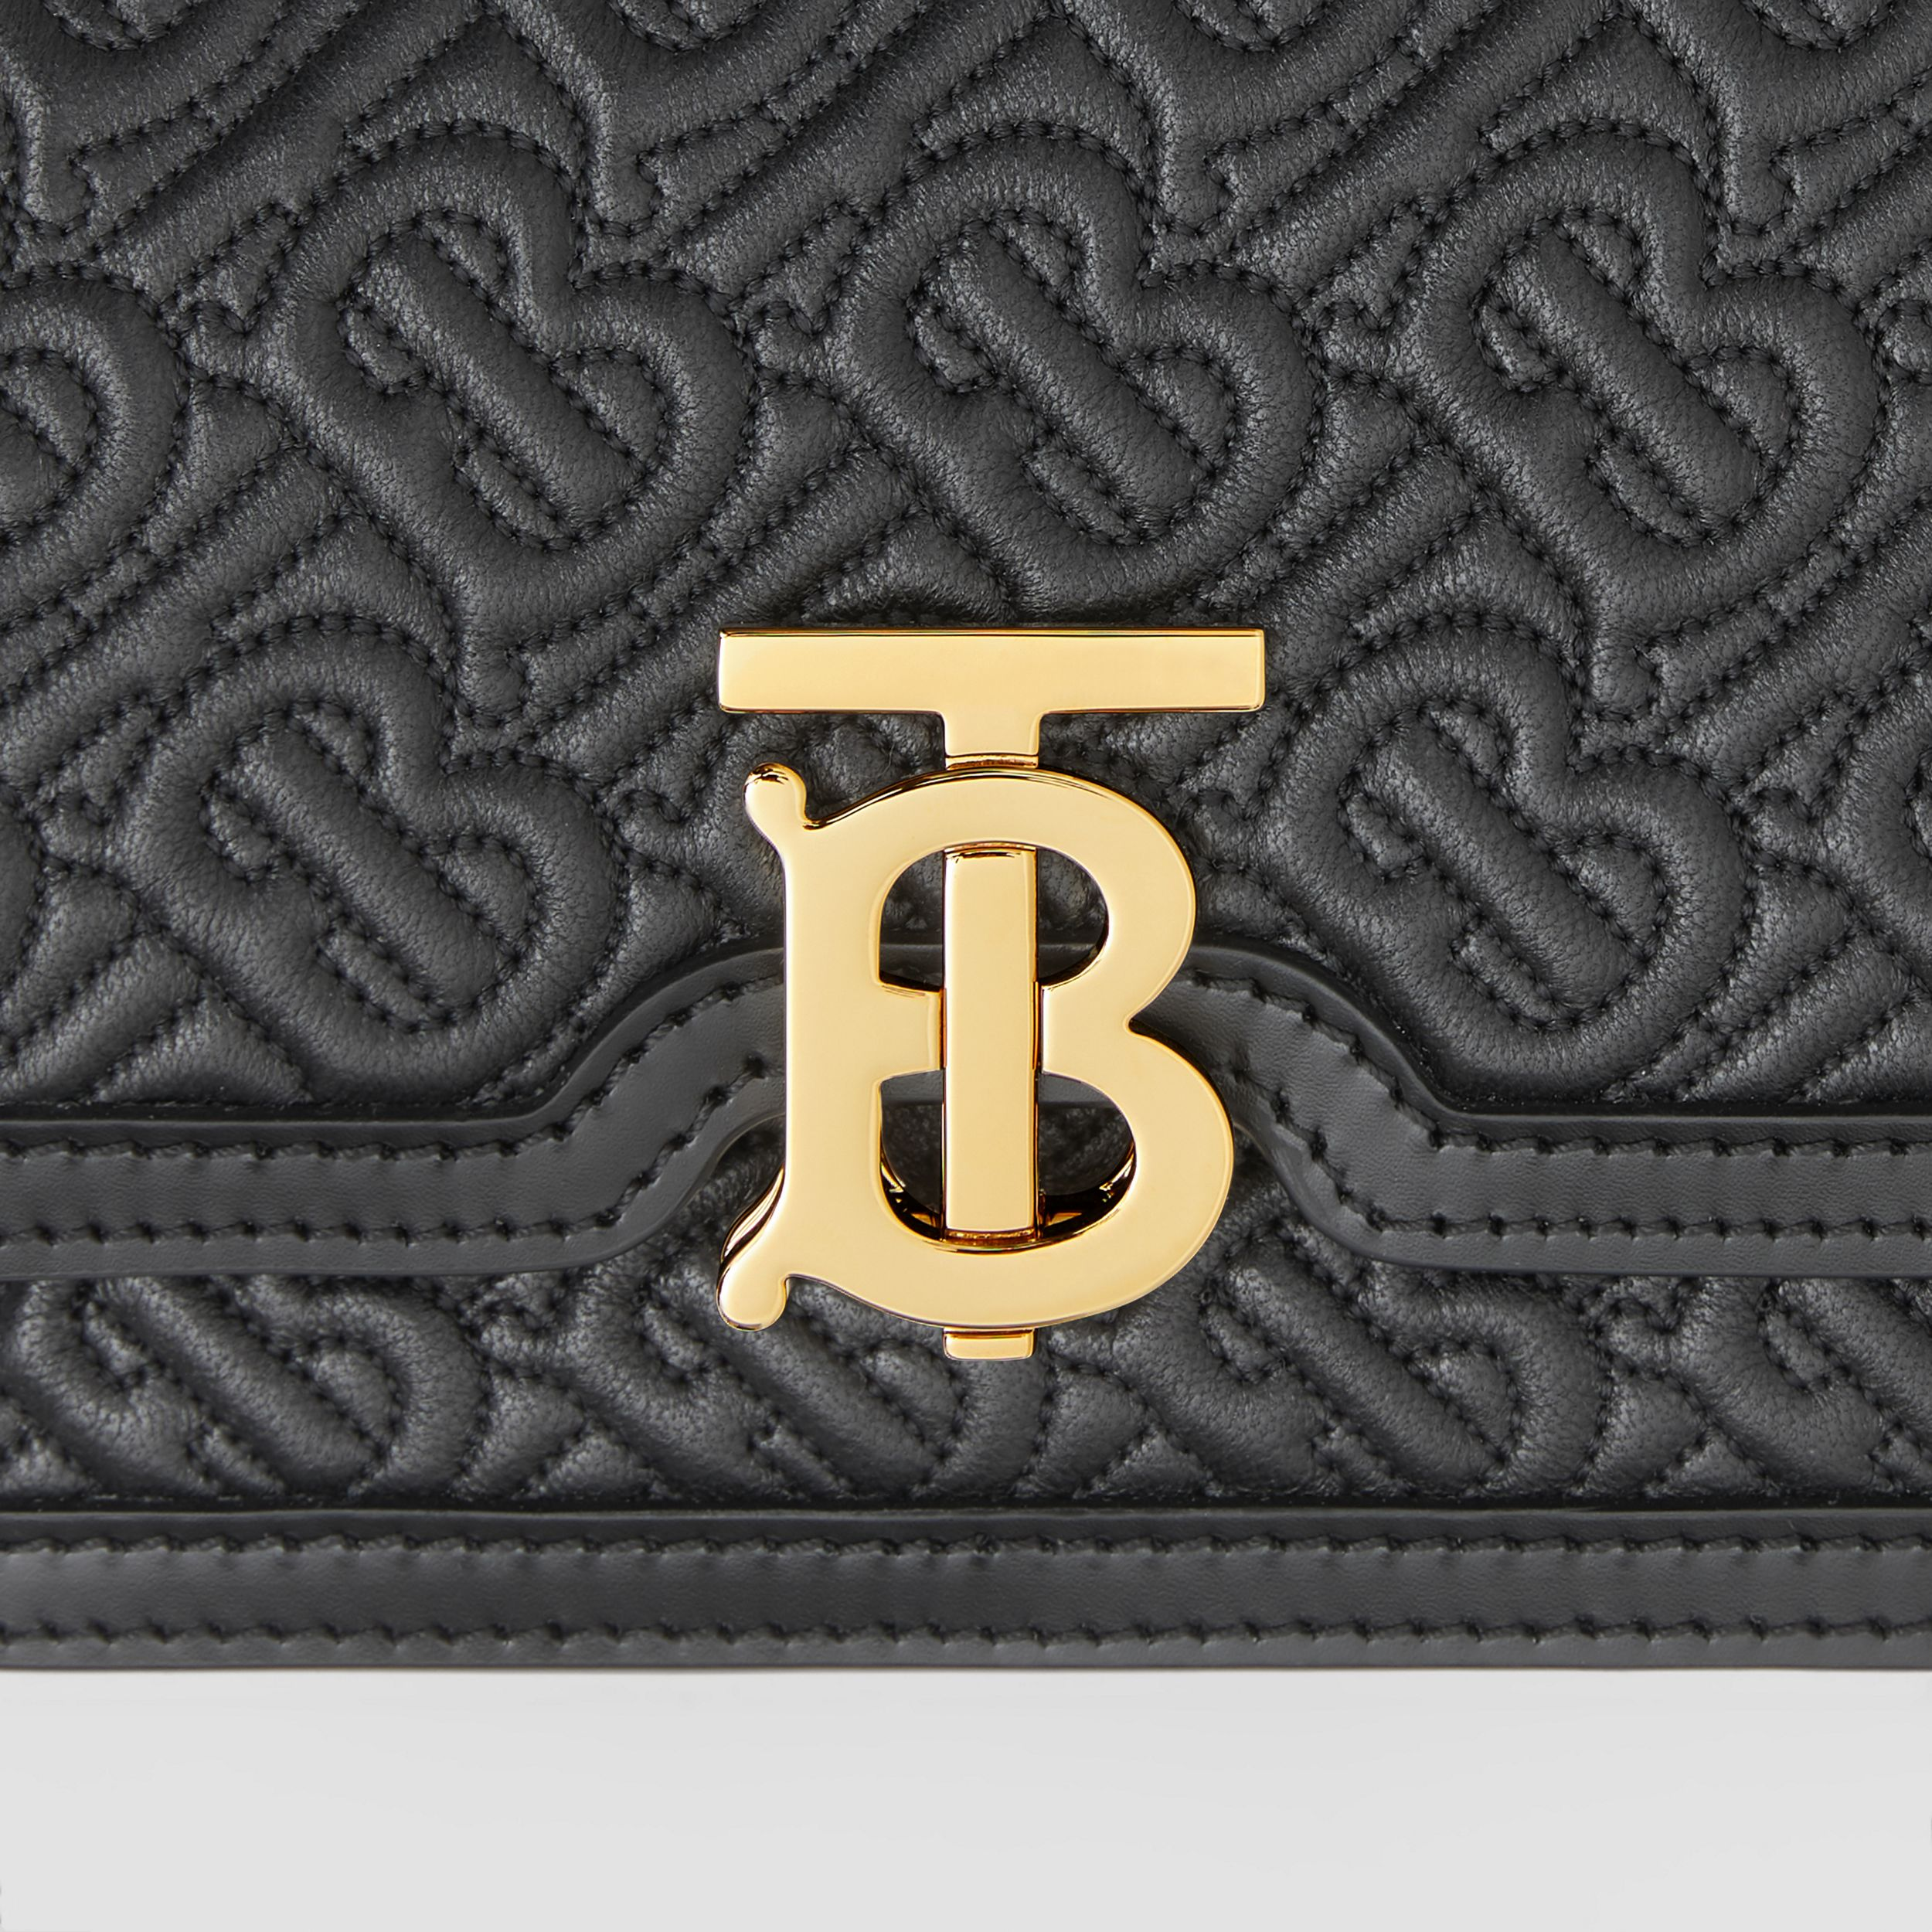 Mini Quilted Monogram Lambskin TB Bag in Black - Women | Burberry - 2